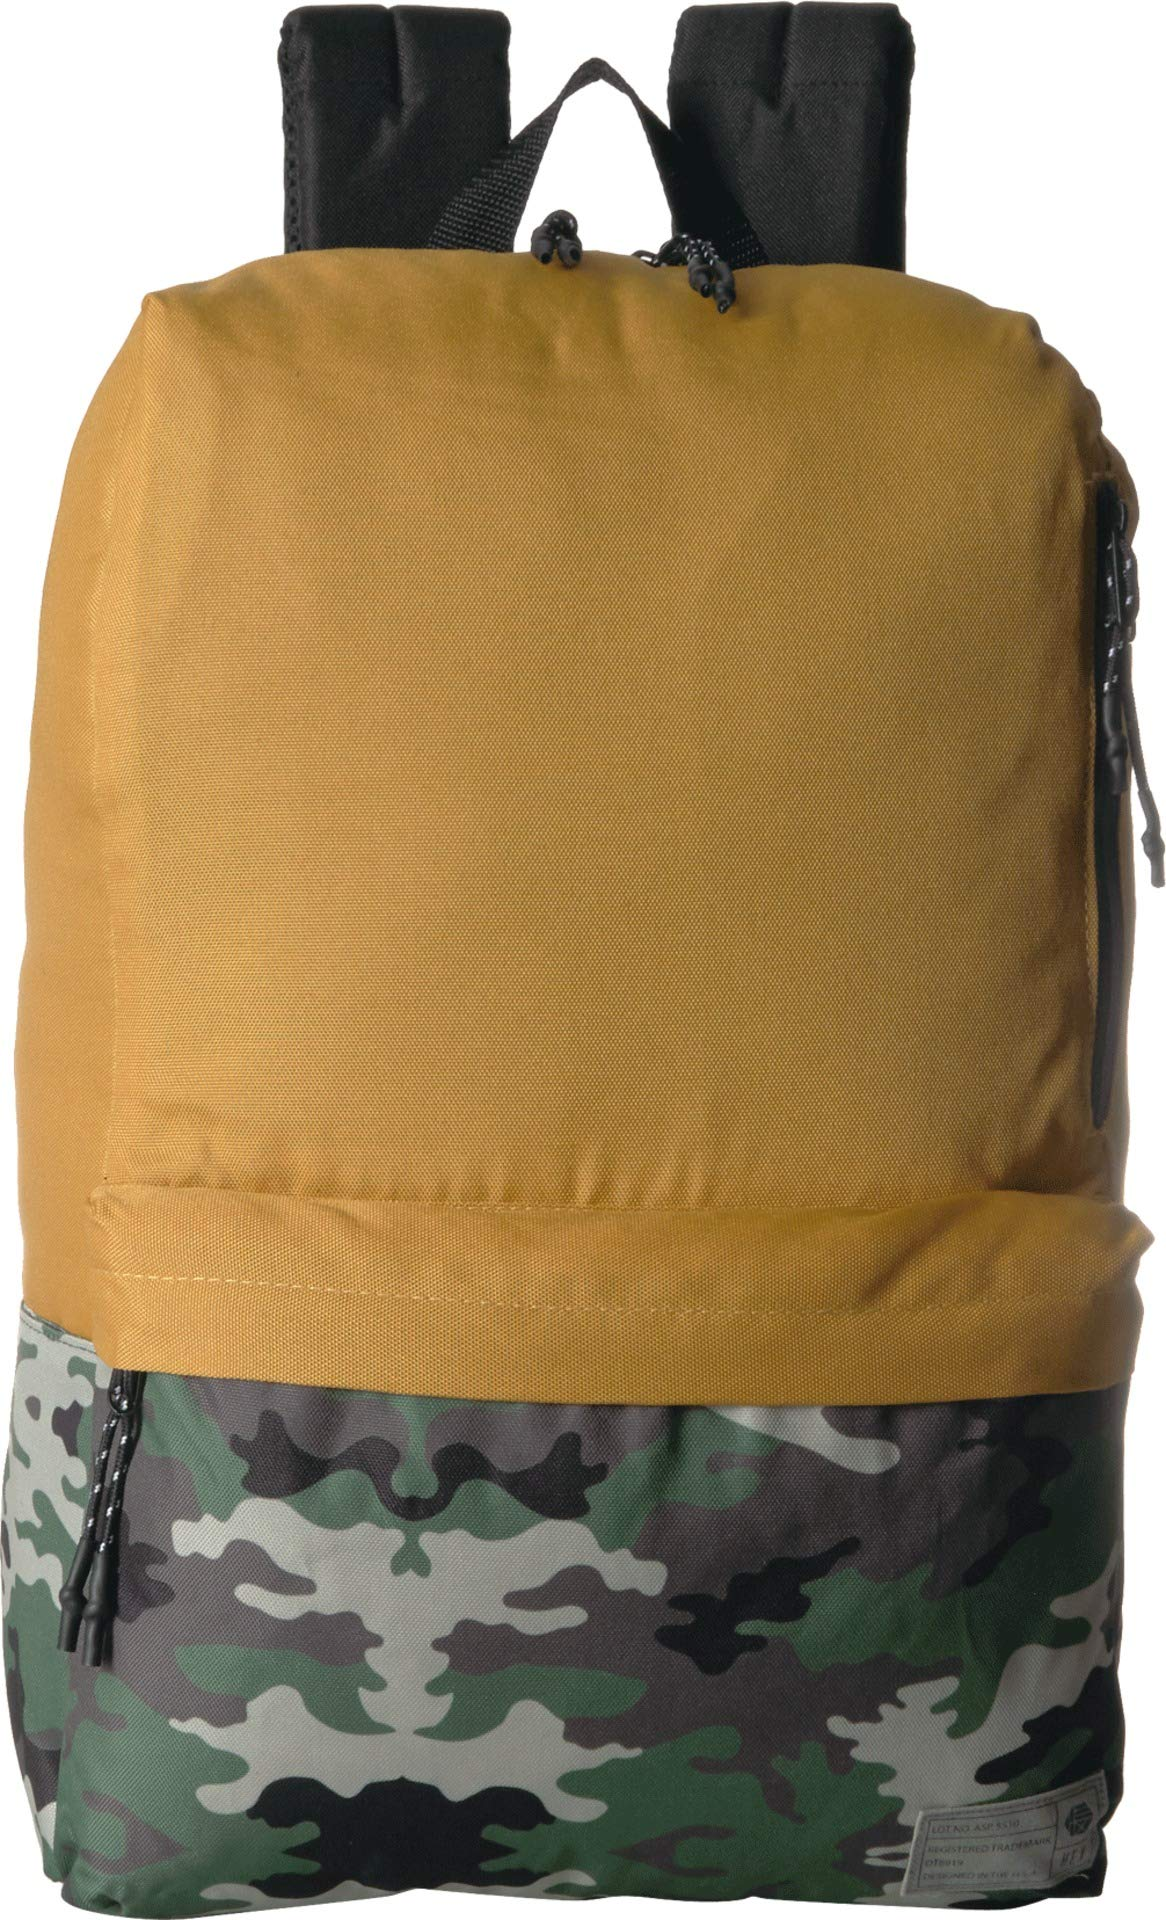 HEX Unisex Aspect Exile Backpack Gold/Camo One Size by HEX